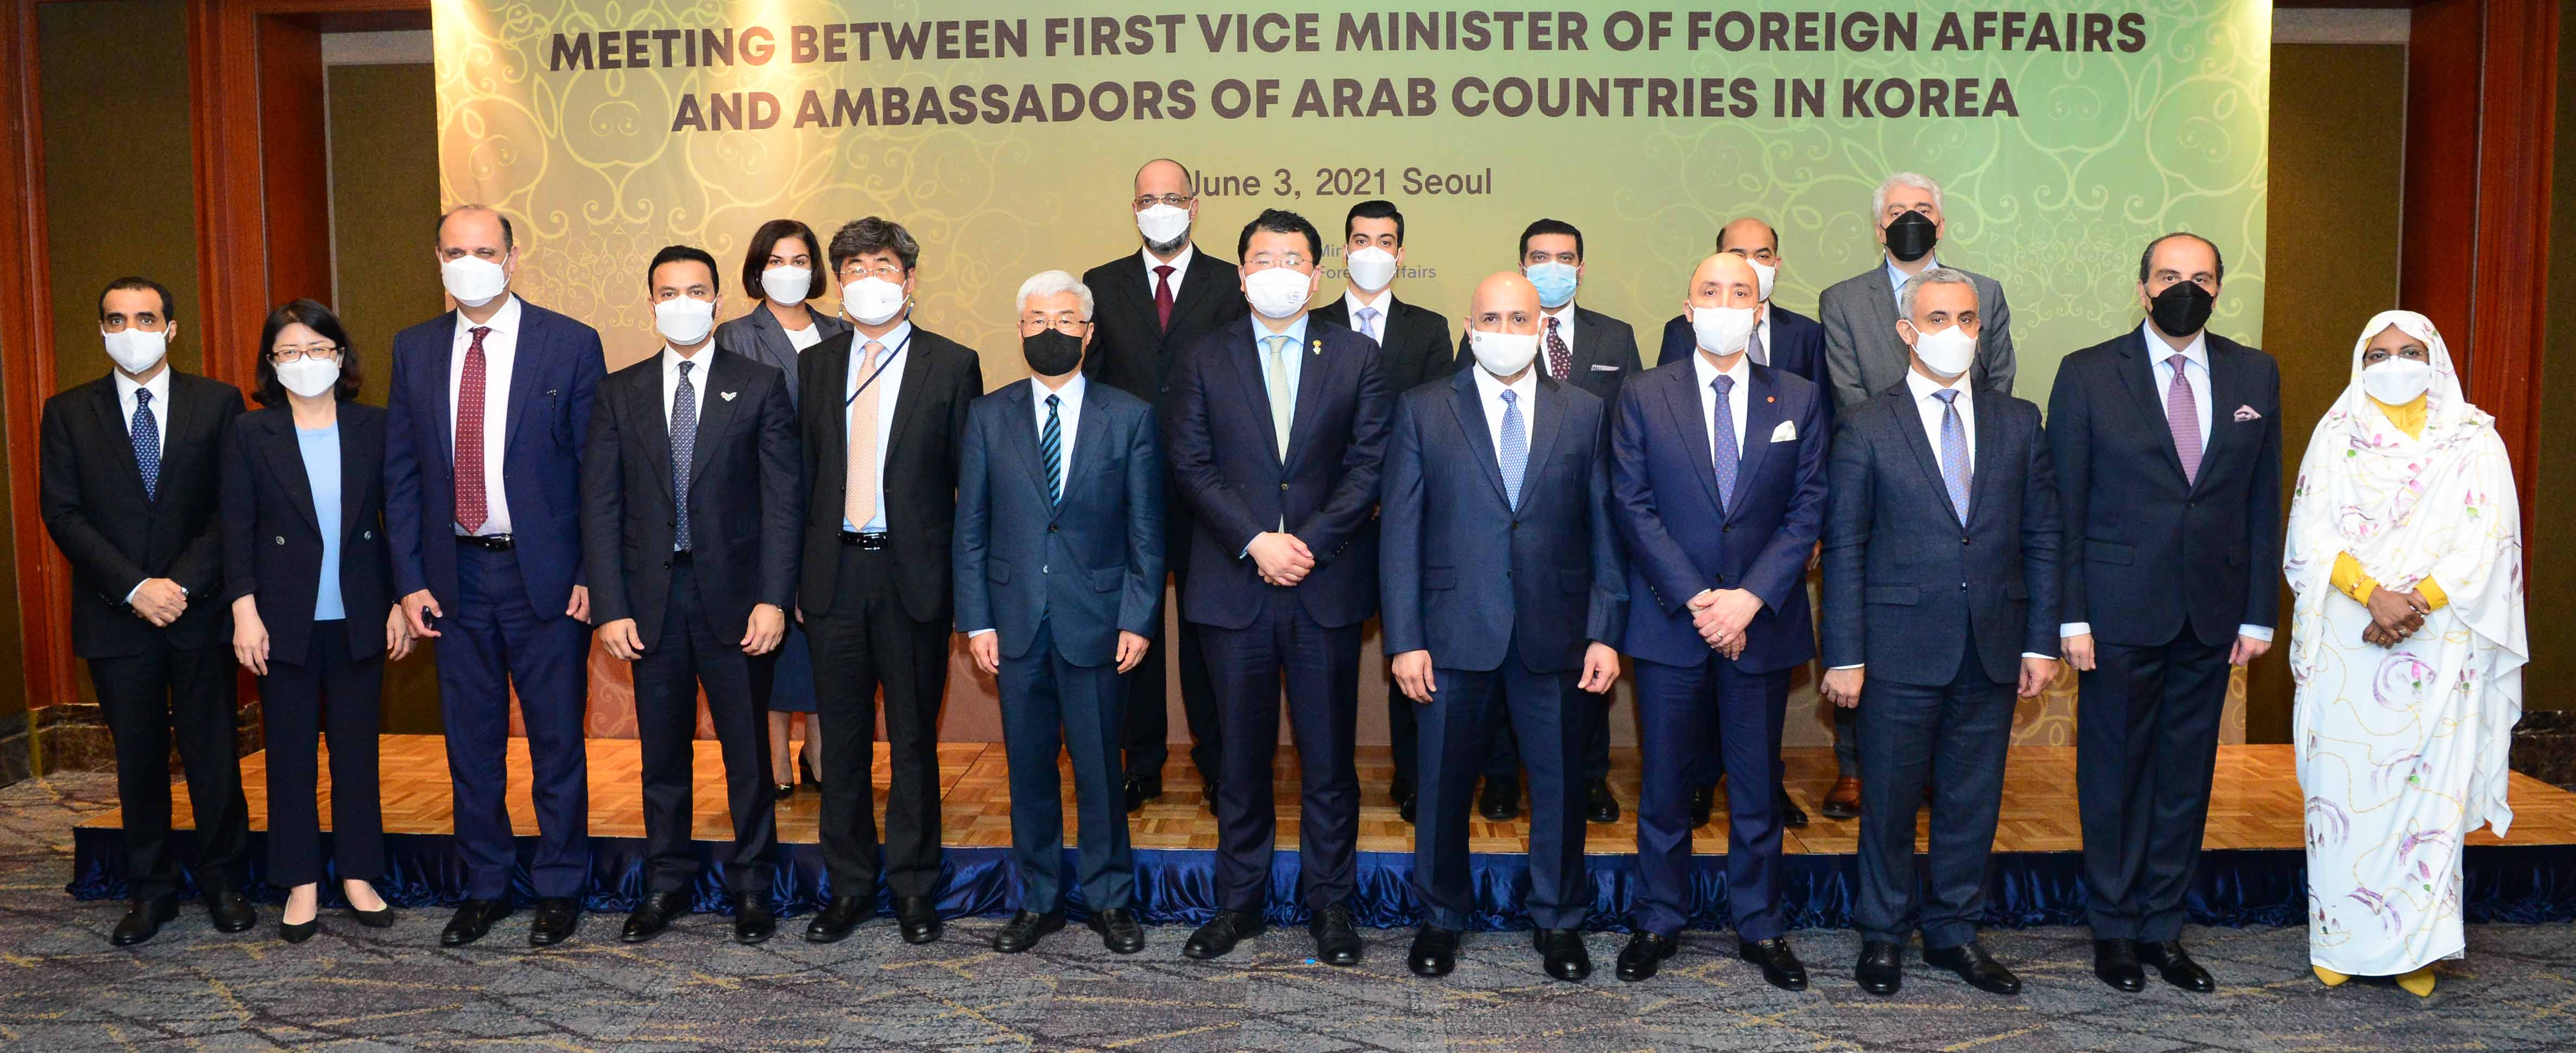 Vice Minister of Foreign Affairs Choi Jong Kun Held Meeting with Ambassadors of Arab Countries to Korea